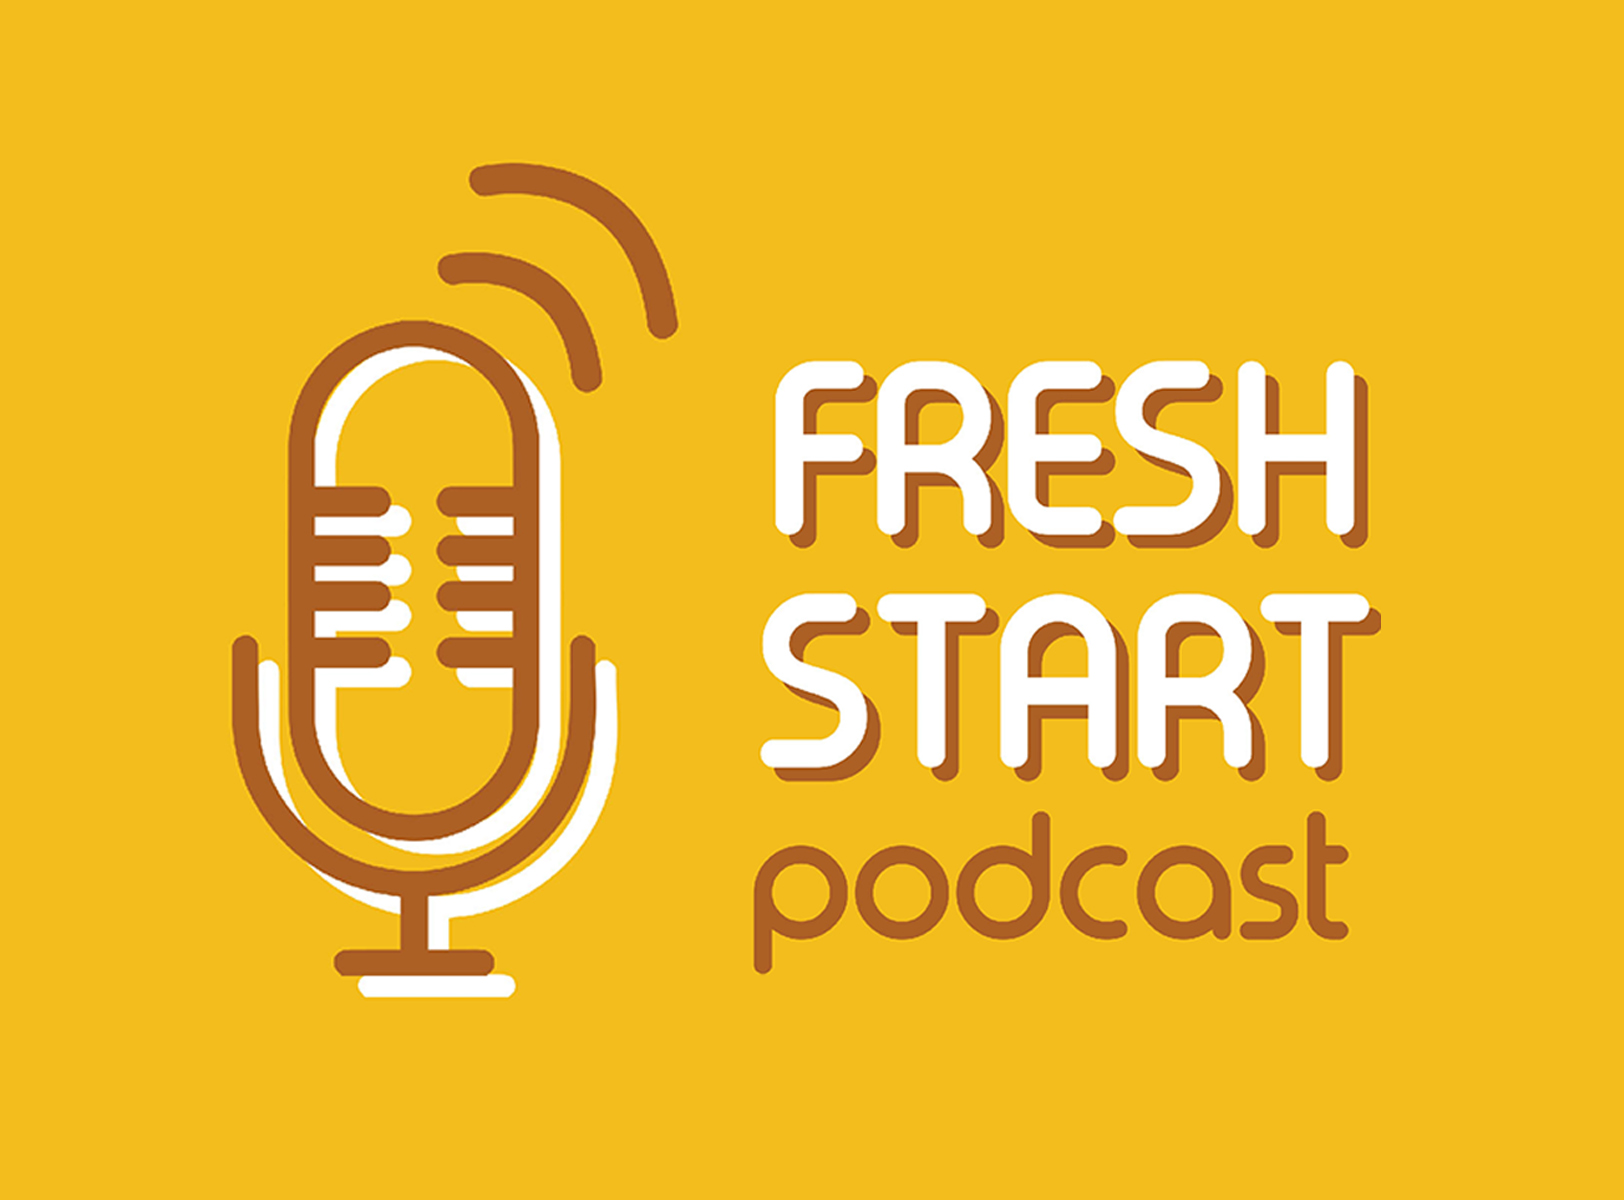 Fresh Start: Podcast News (11/19/2018 Mon.)